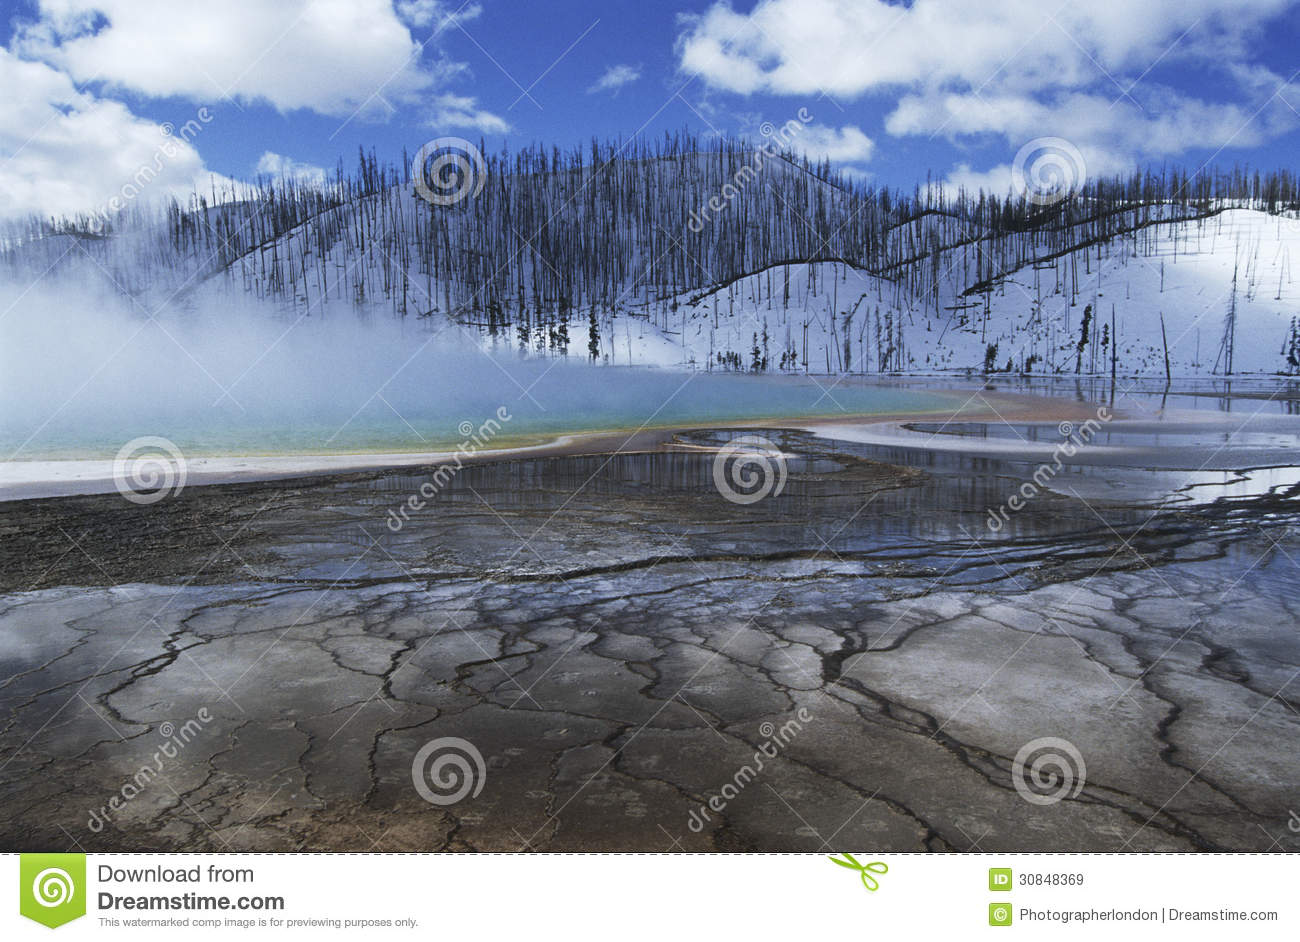 USA Wyoming Yellowstone National Park Grand Prismatic Spring Mist.